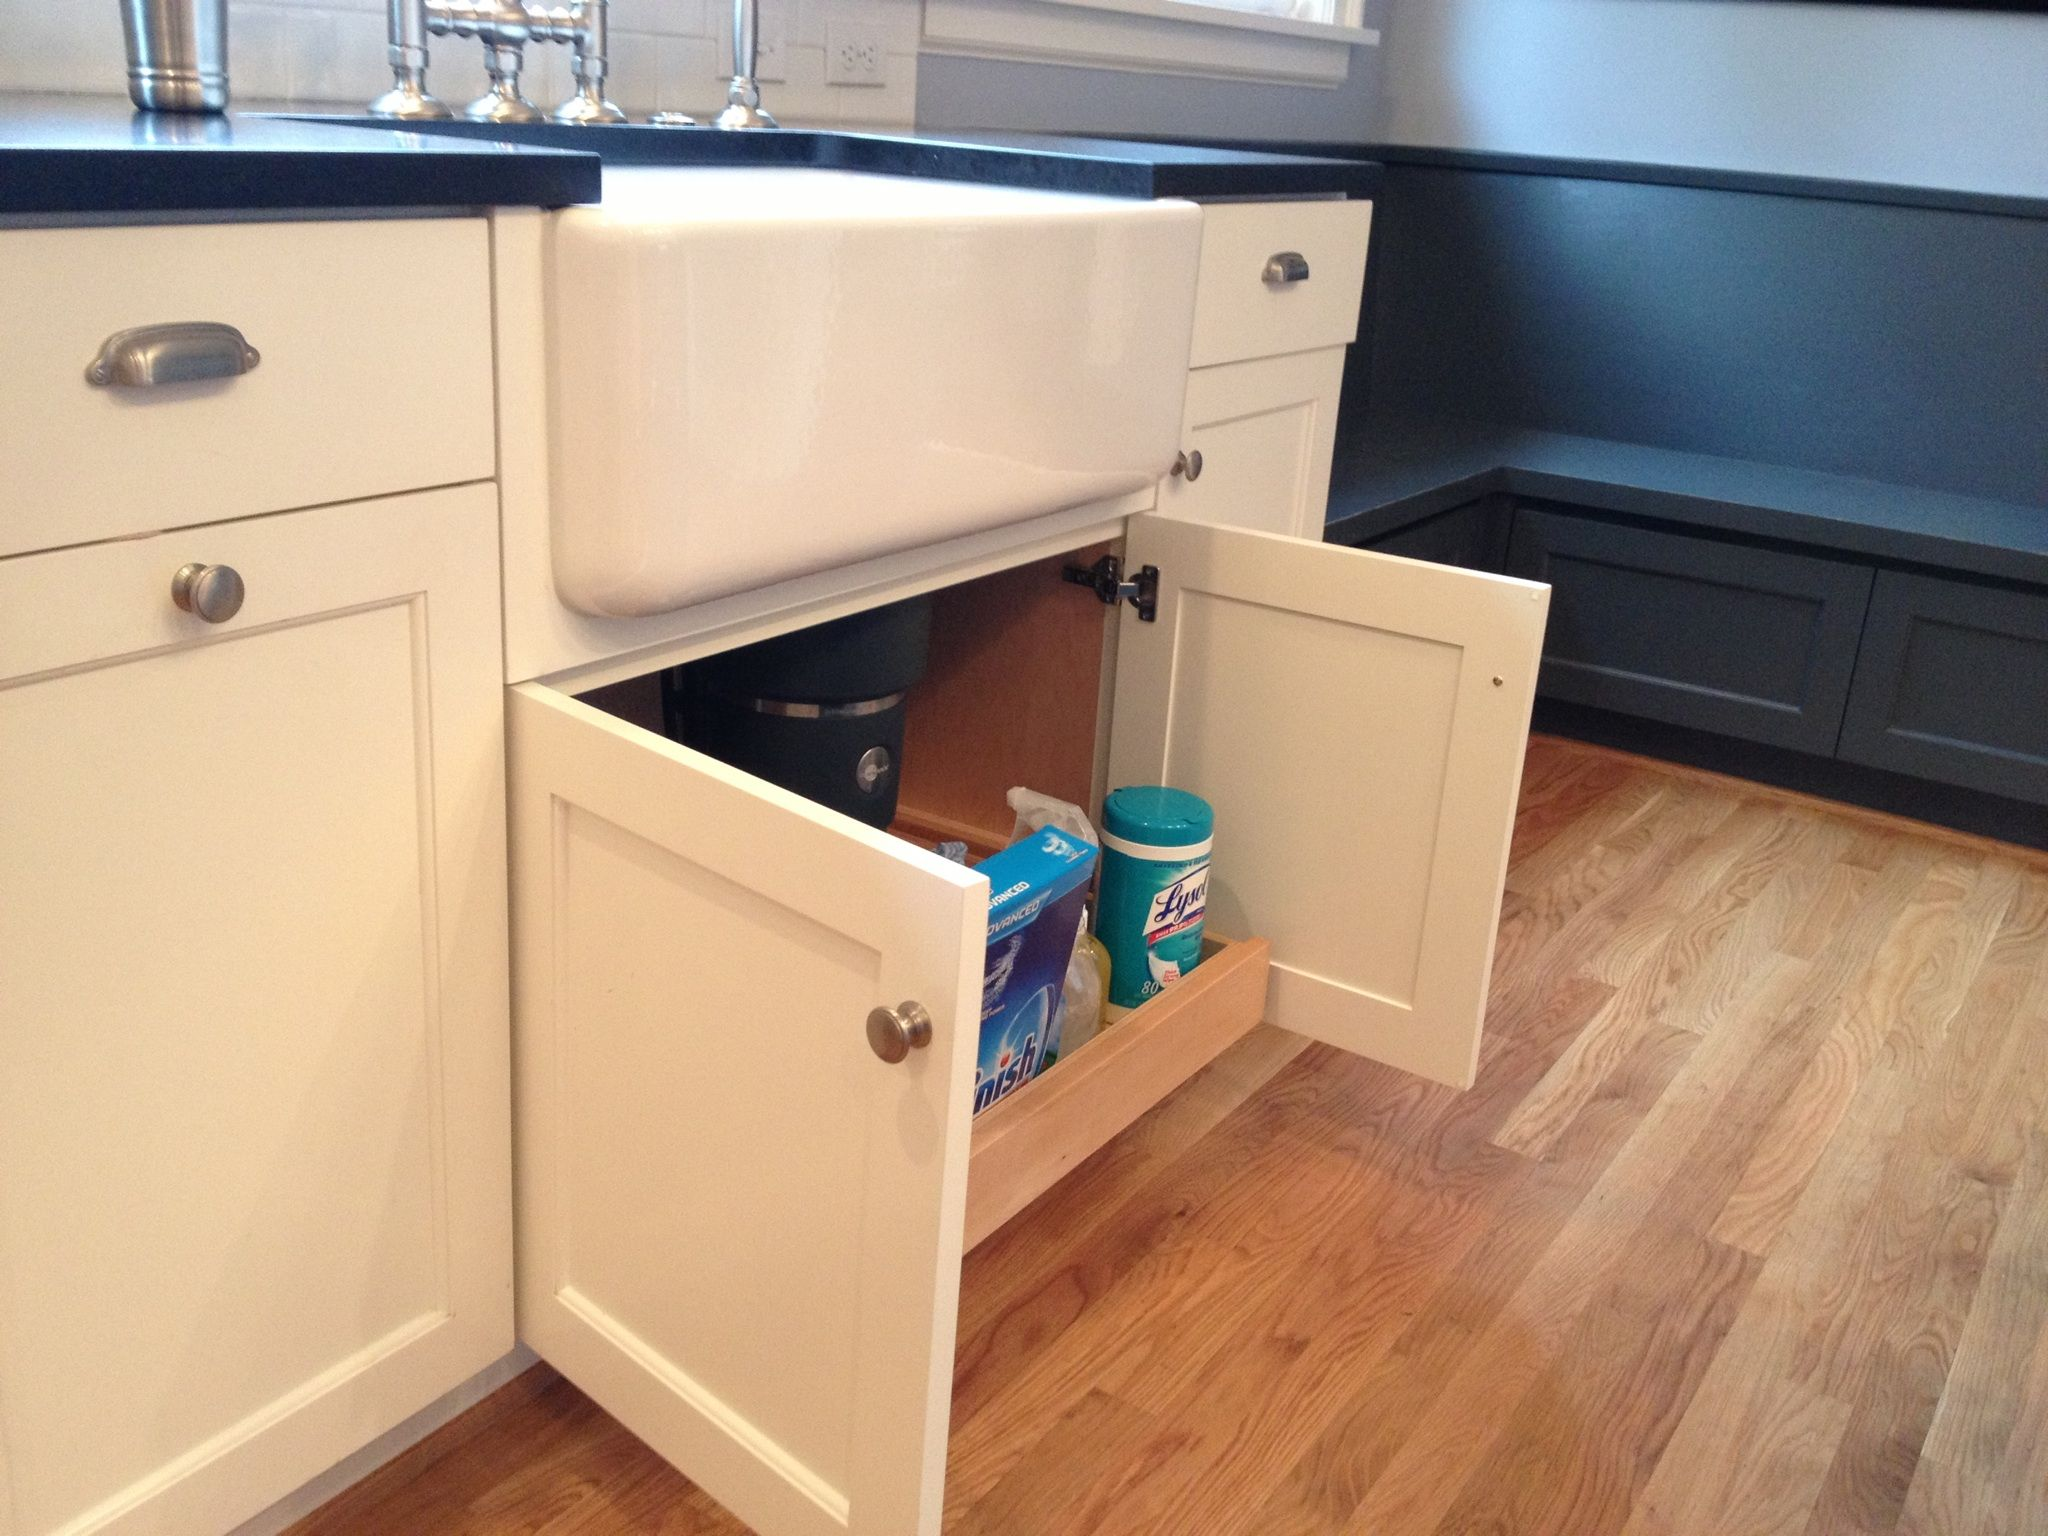 Custom White Cabinets With Farmhouse Sink Pull-out Under